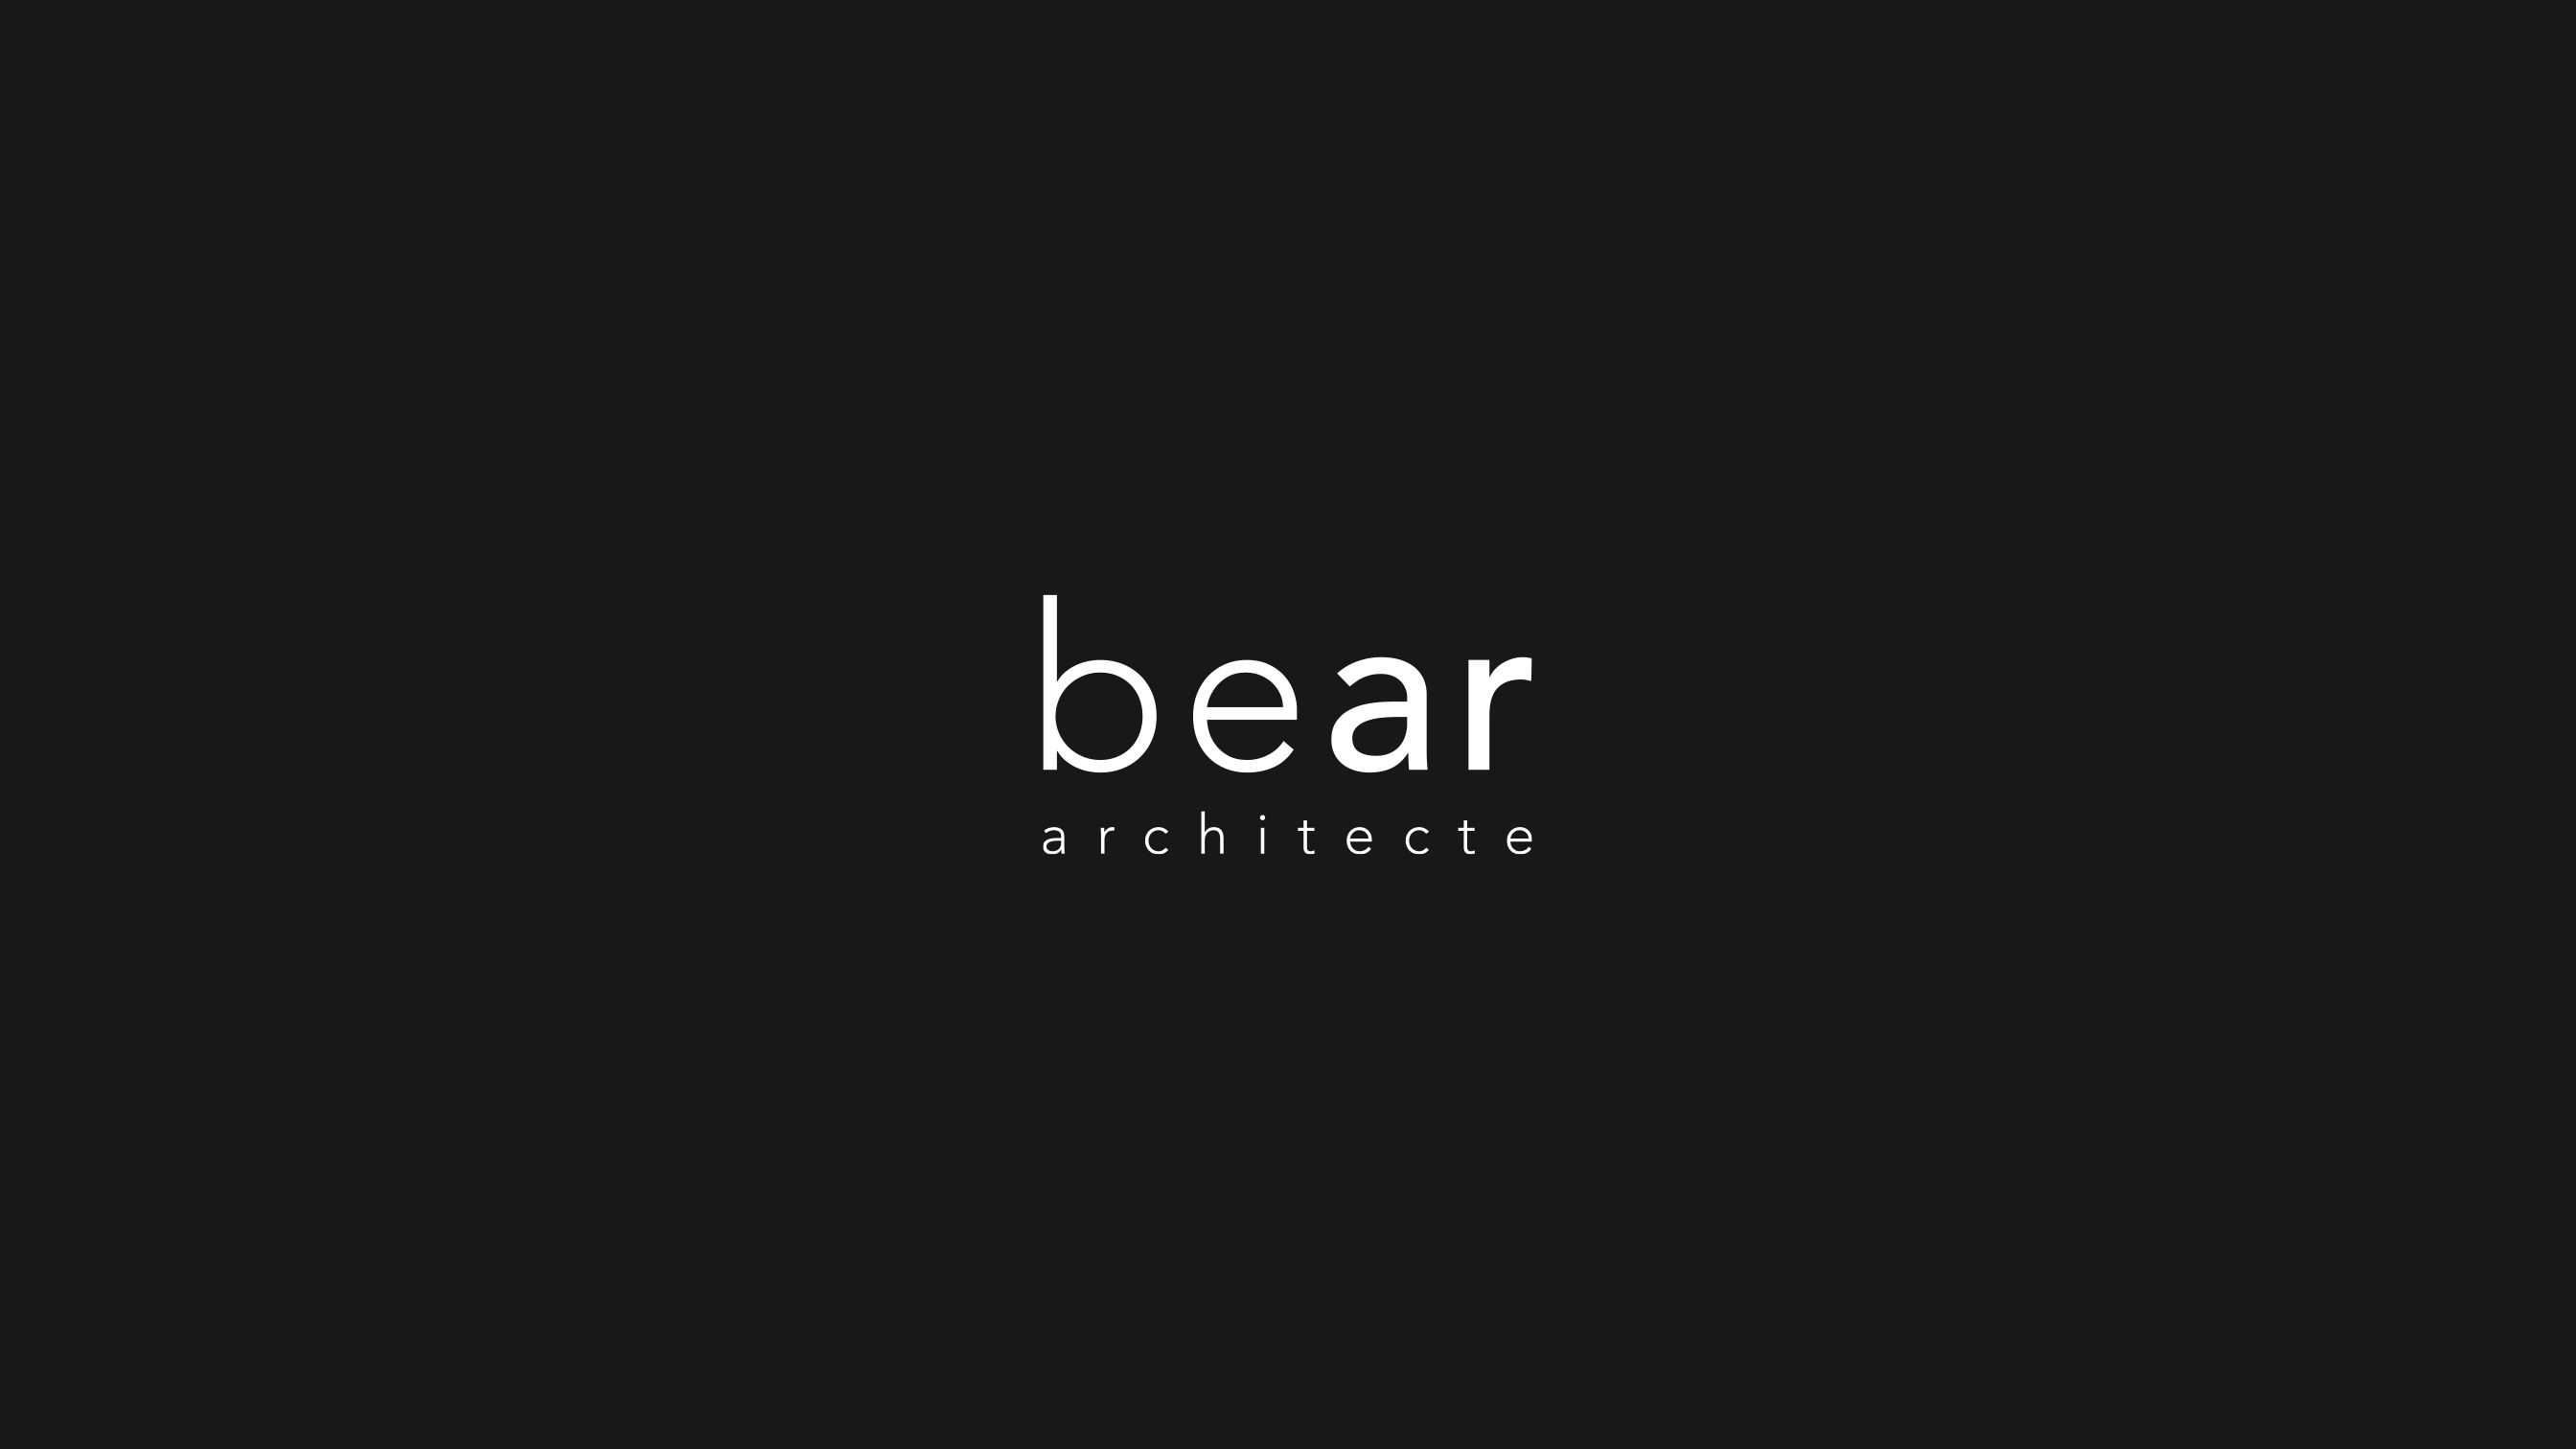 showcase-logotype-bear